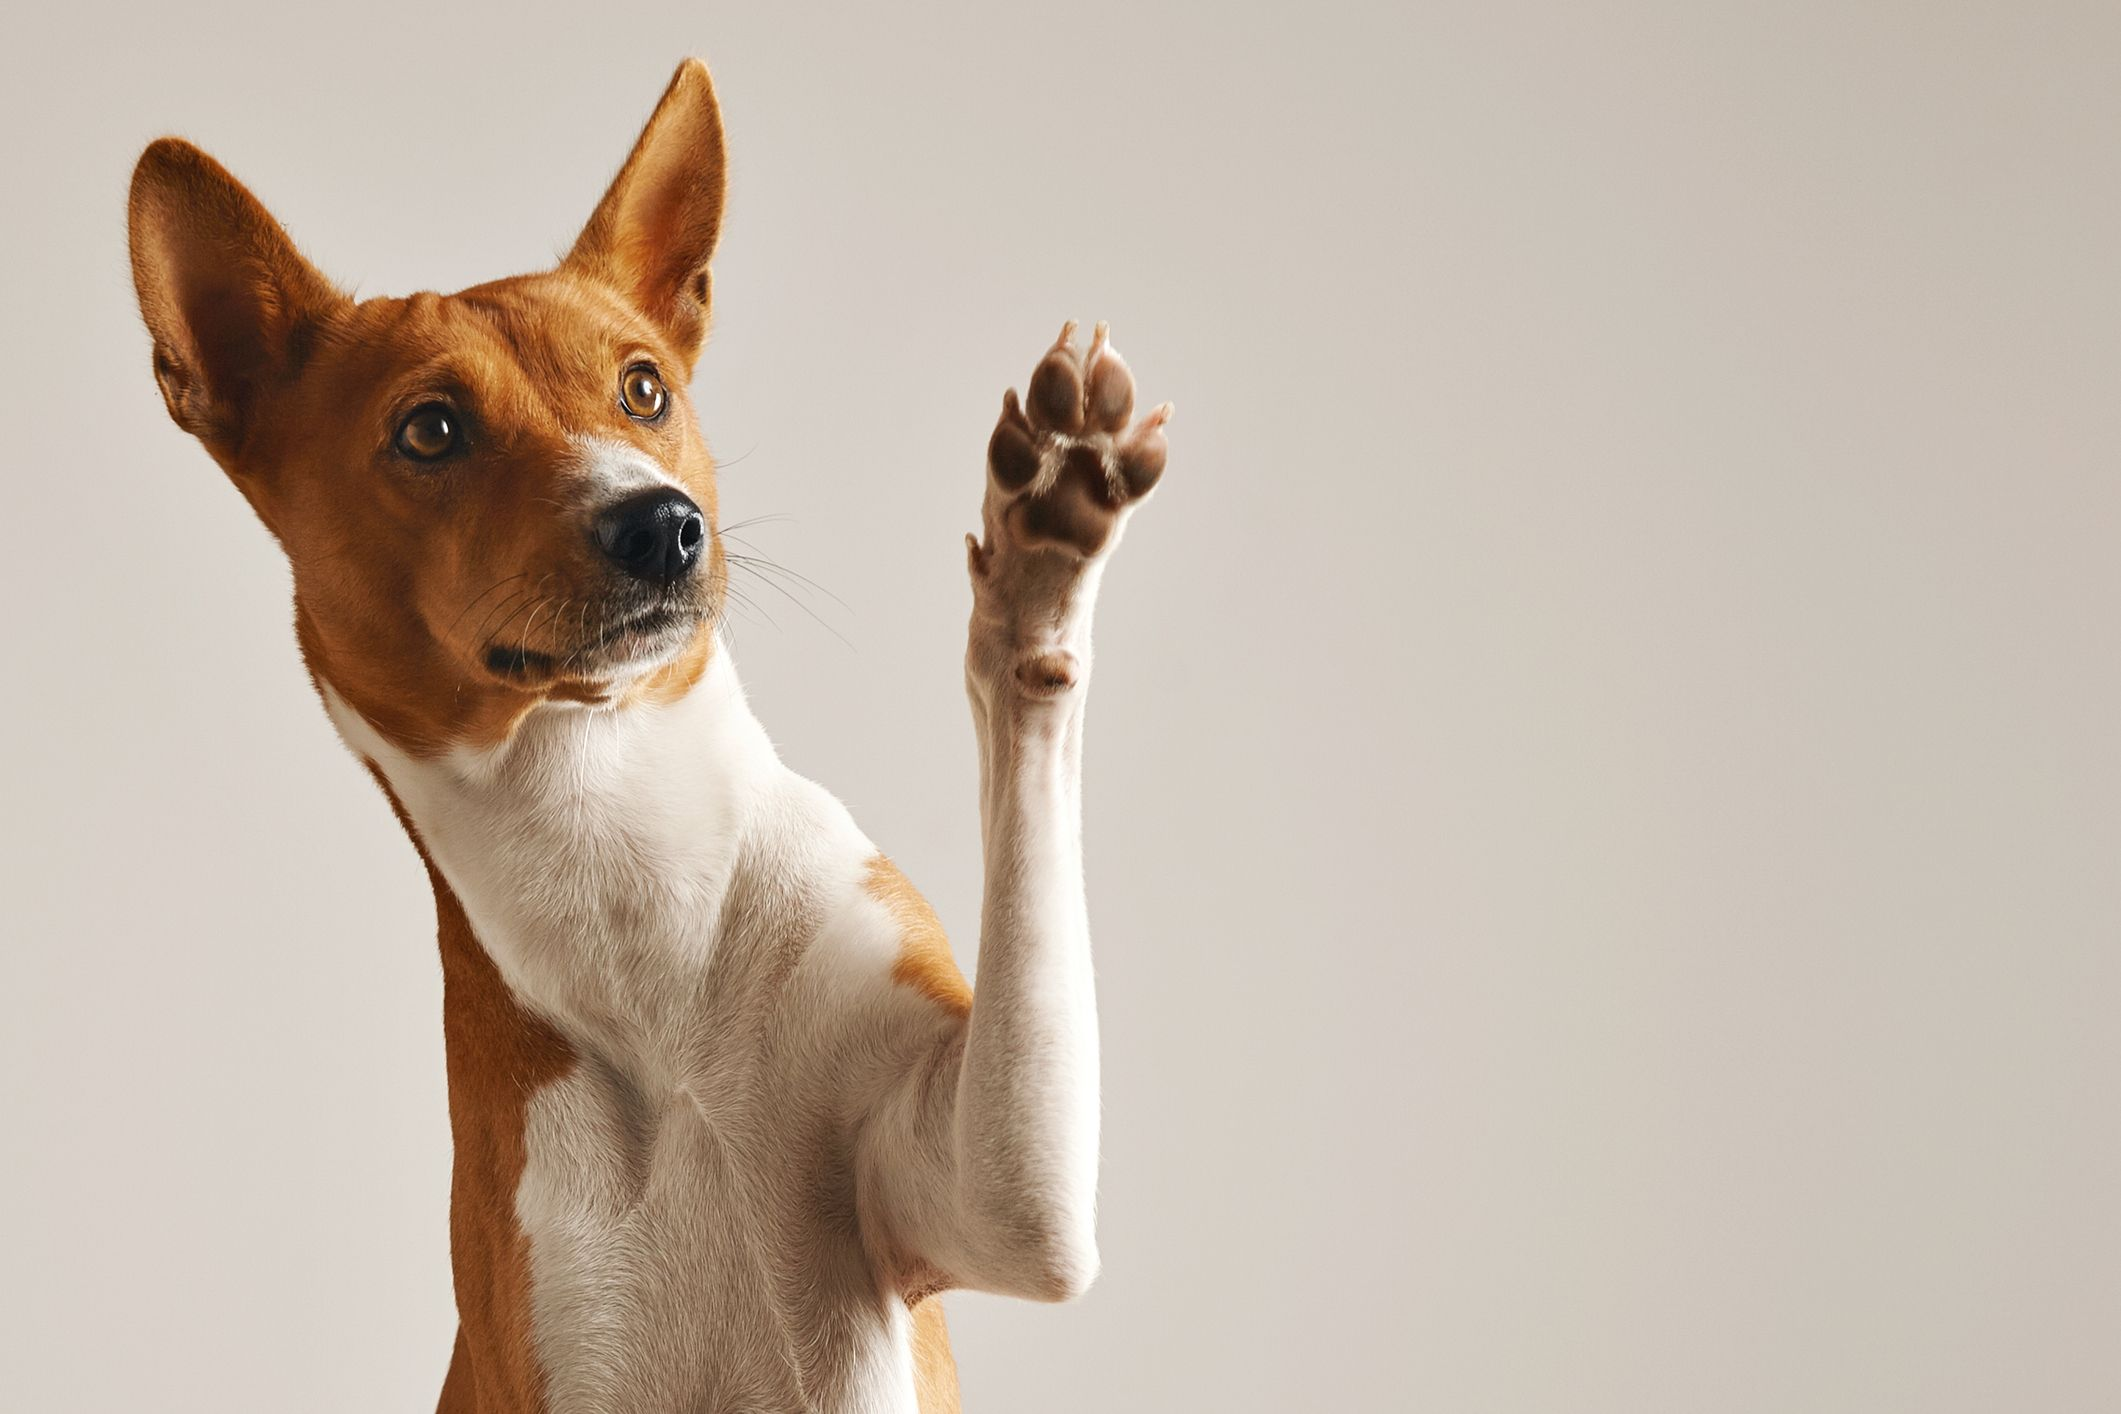 Dog with paw up